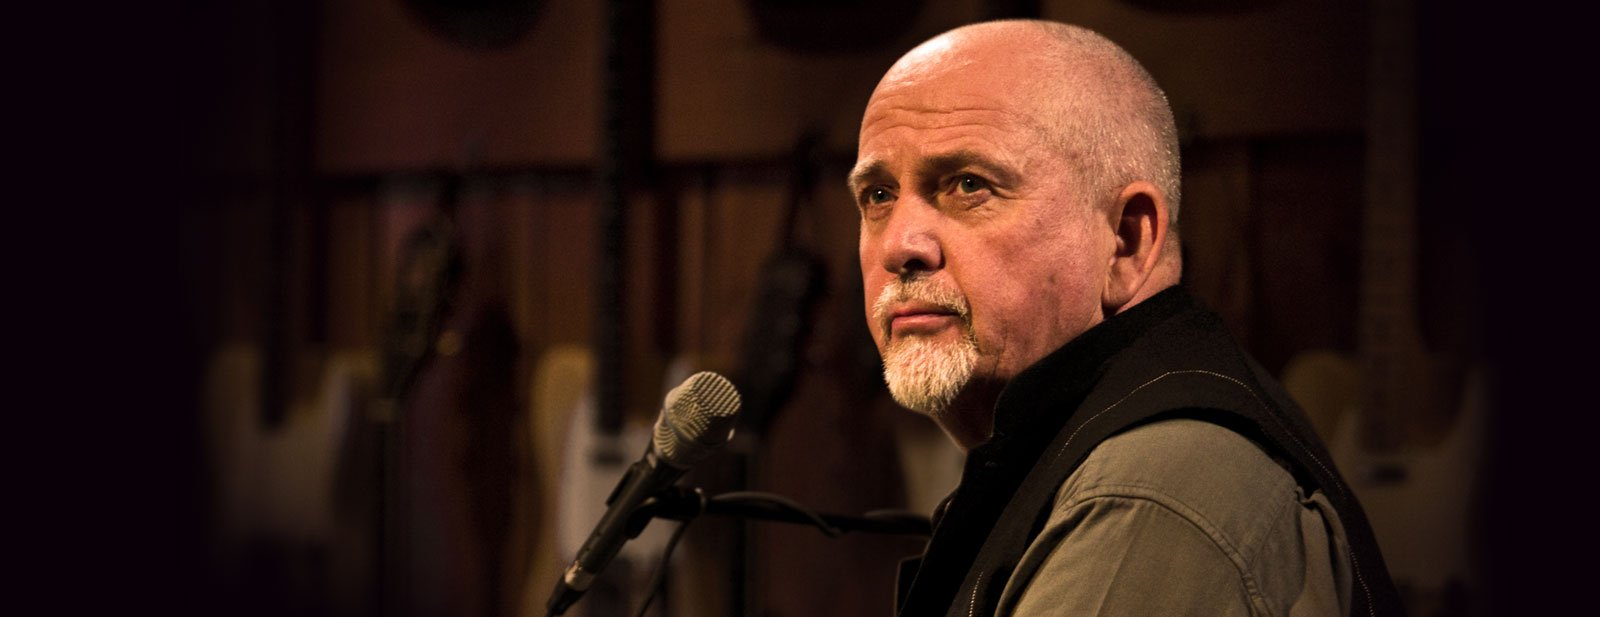 Happy birthday to Peter Gabriel.